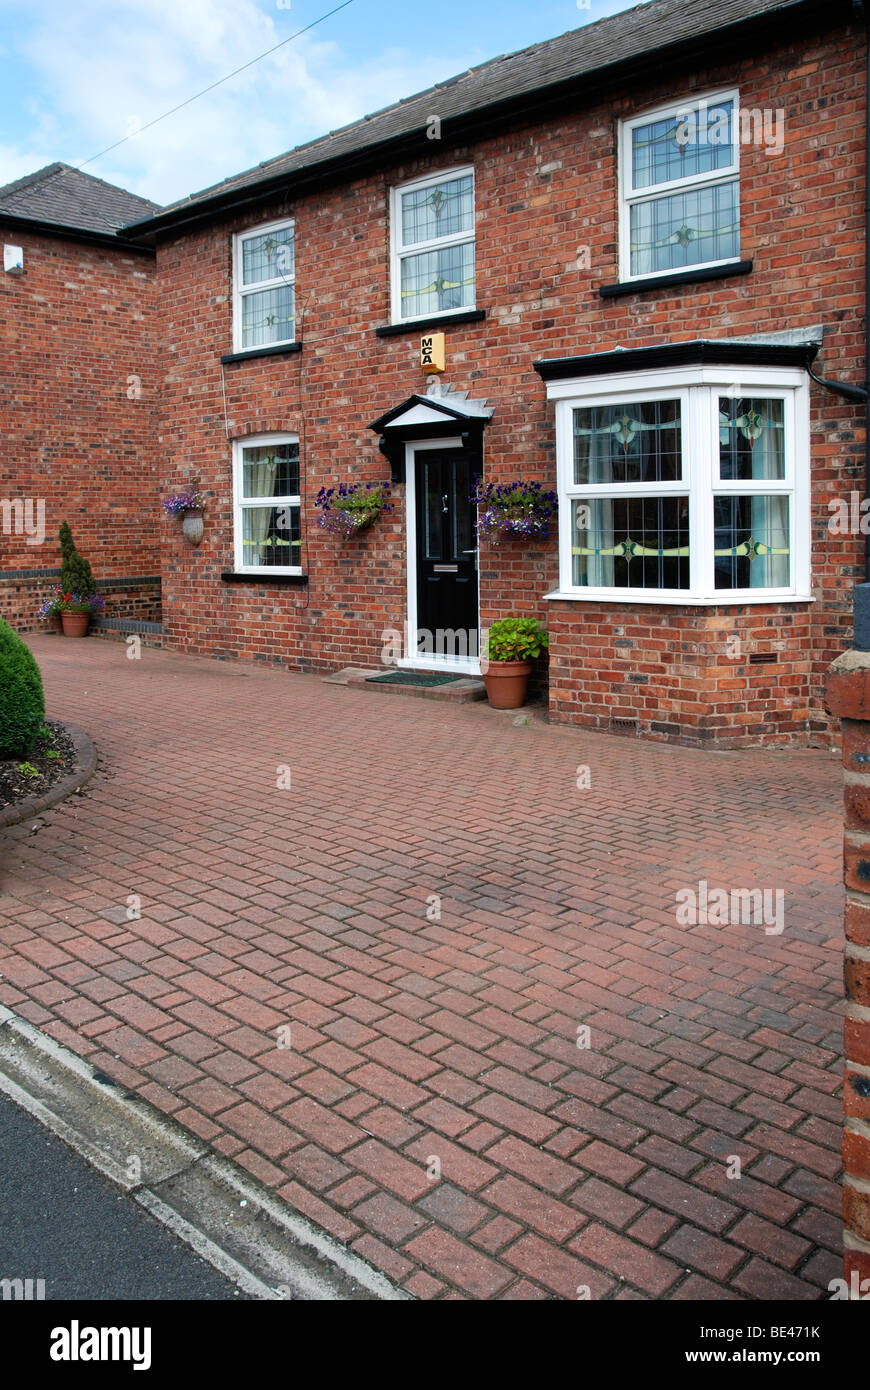 Stock Photo   A Front Garden Paved Over With Block Paving Stones, Uk